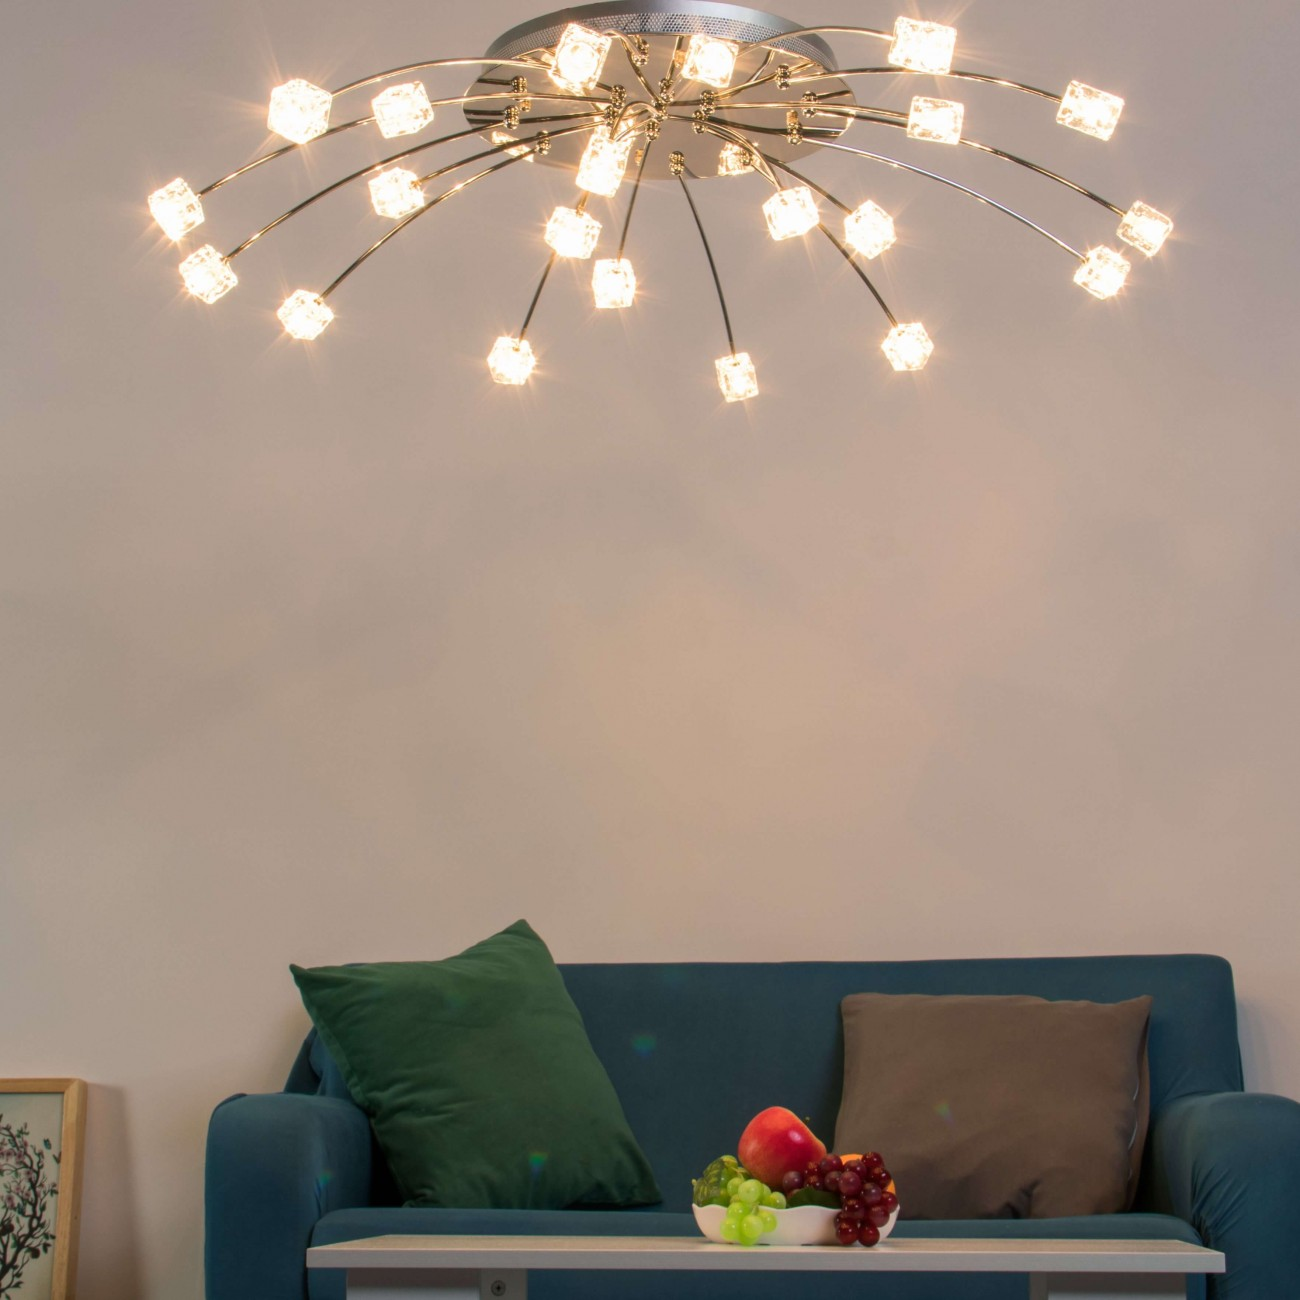 Ceiling Light Ice Cubes Diffusing, Contemporary Living Room Ceiling Lights Uk